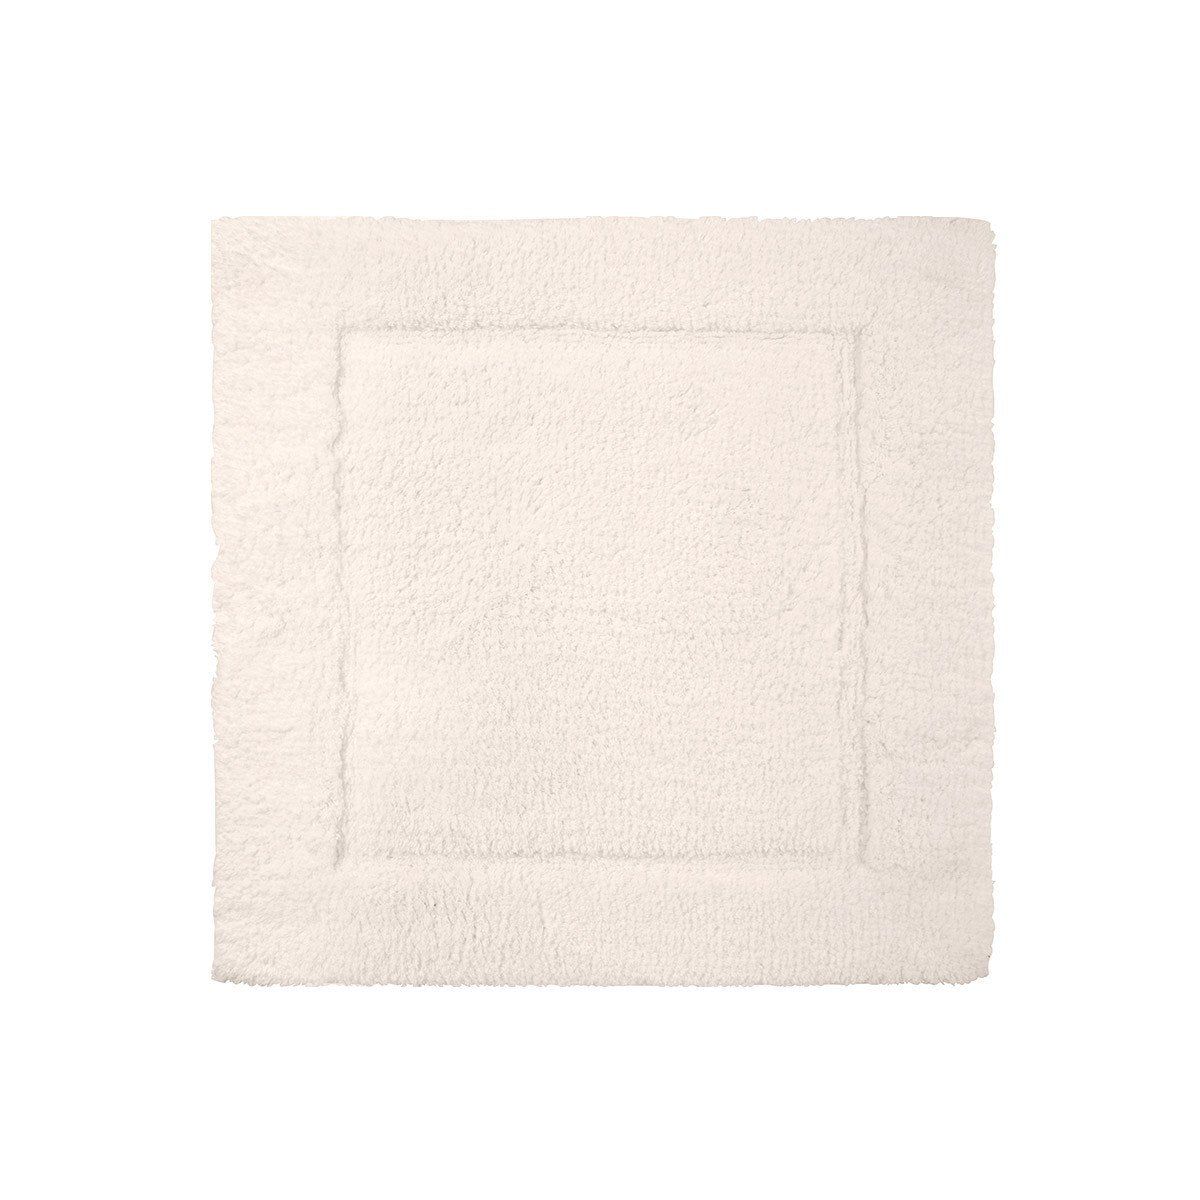 Prestige Nacre Bath Rug by Yves Delorme | Fig Linens and Home - Square, ivory, bath mat, rug, cotton